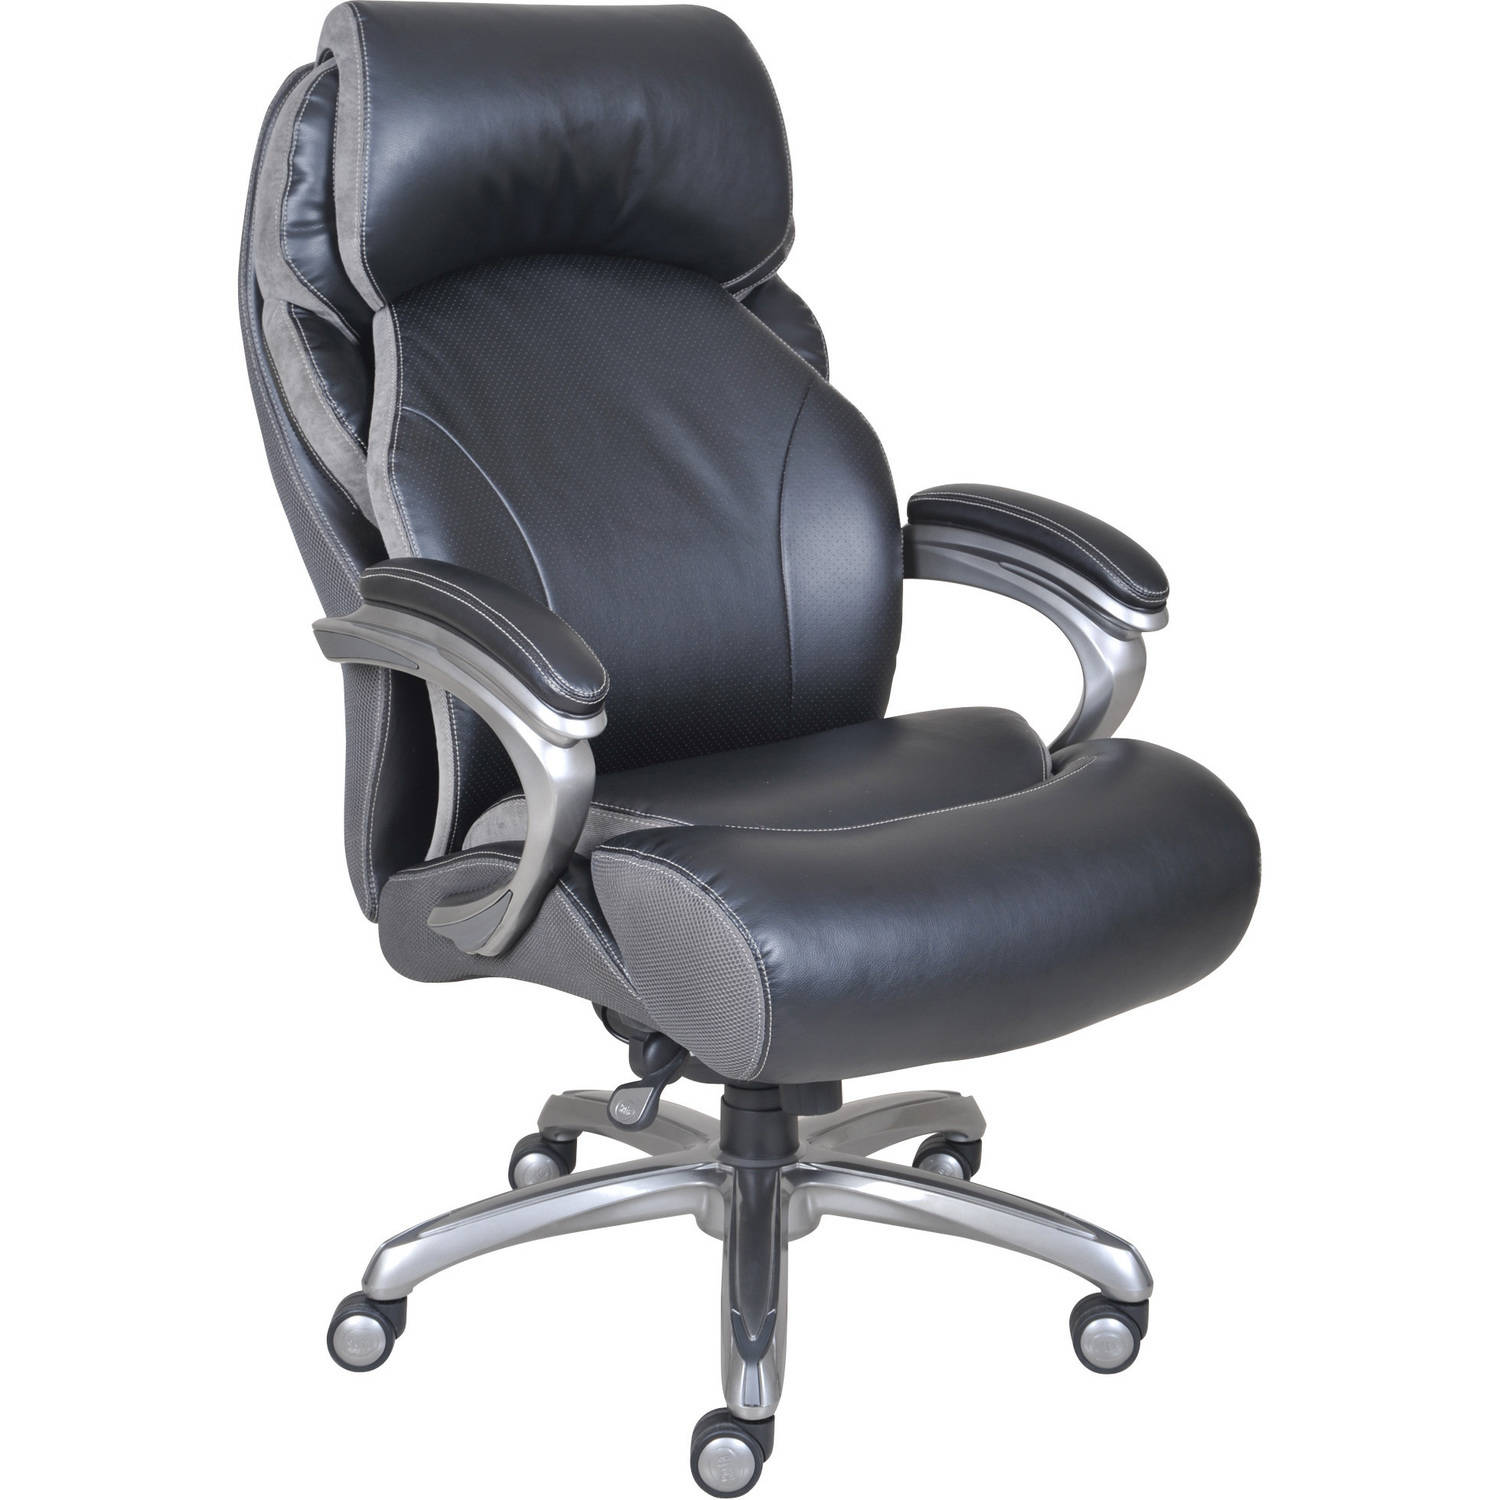 Serta Big and Tall Smart Layers Executive fice Chair with AIR